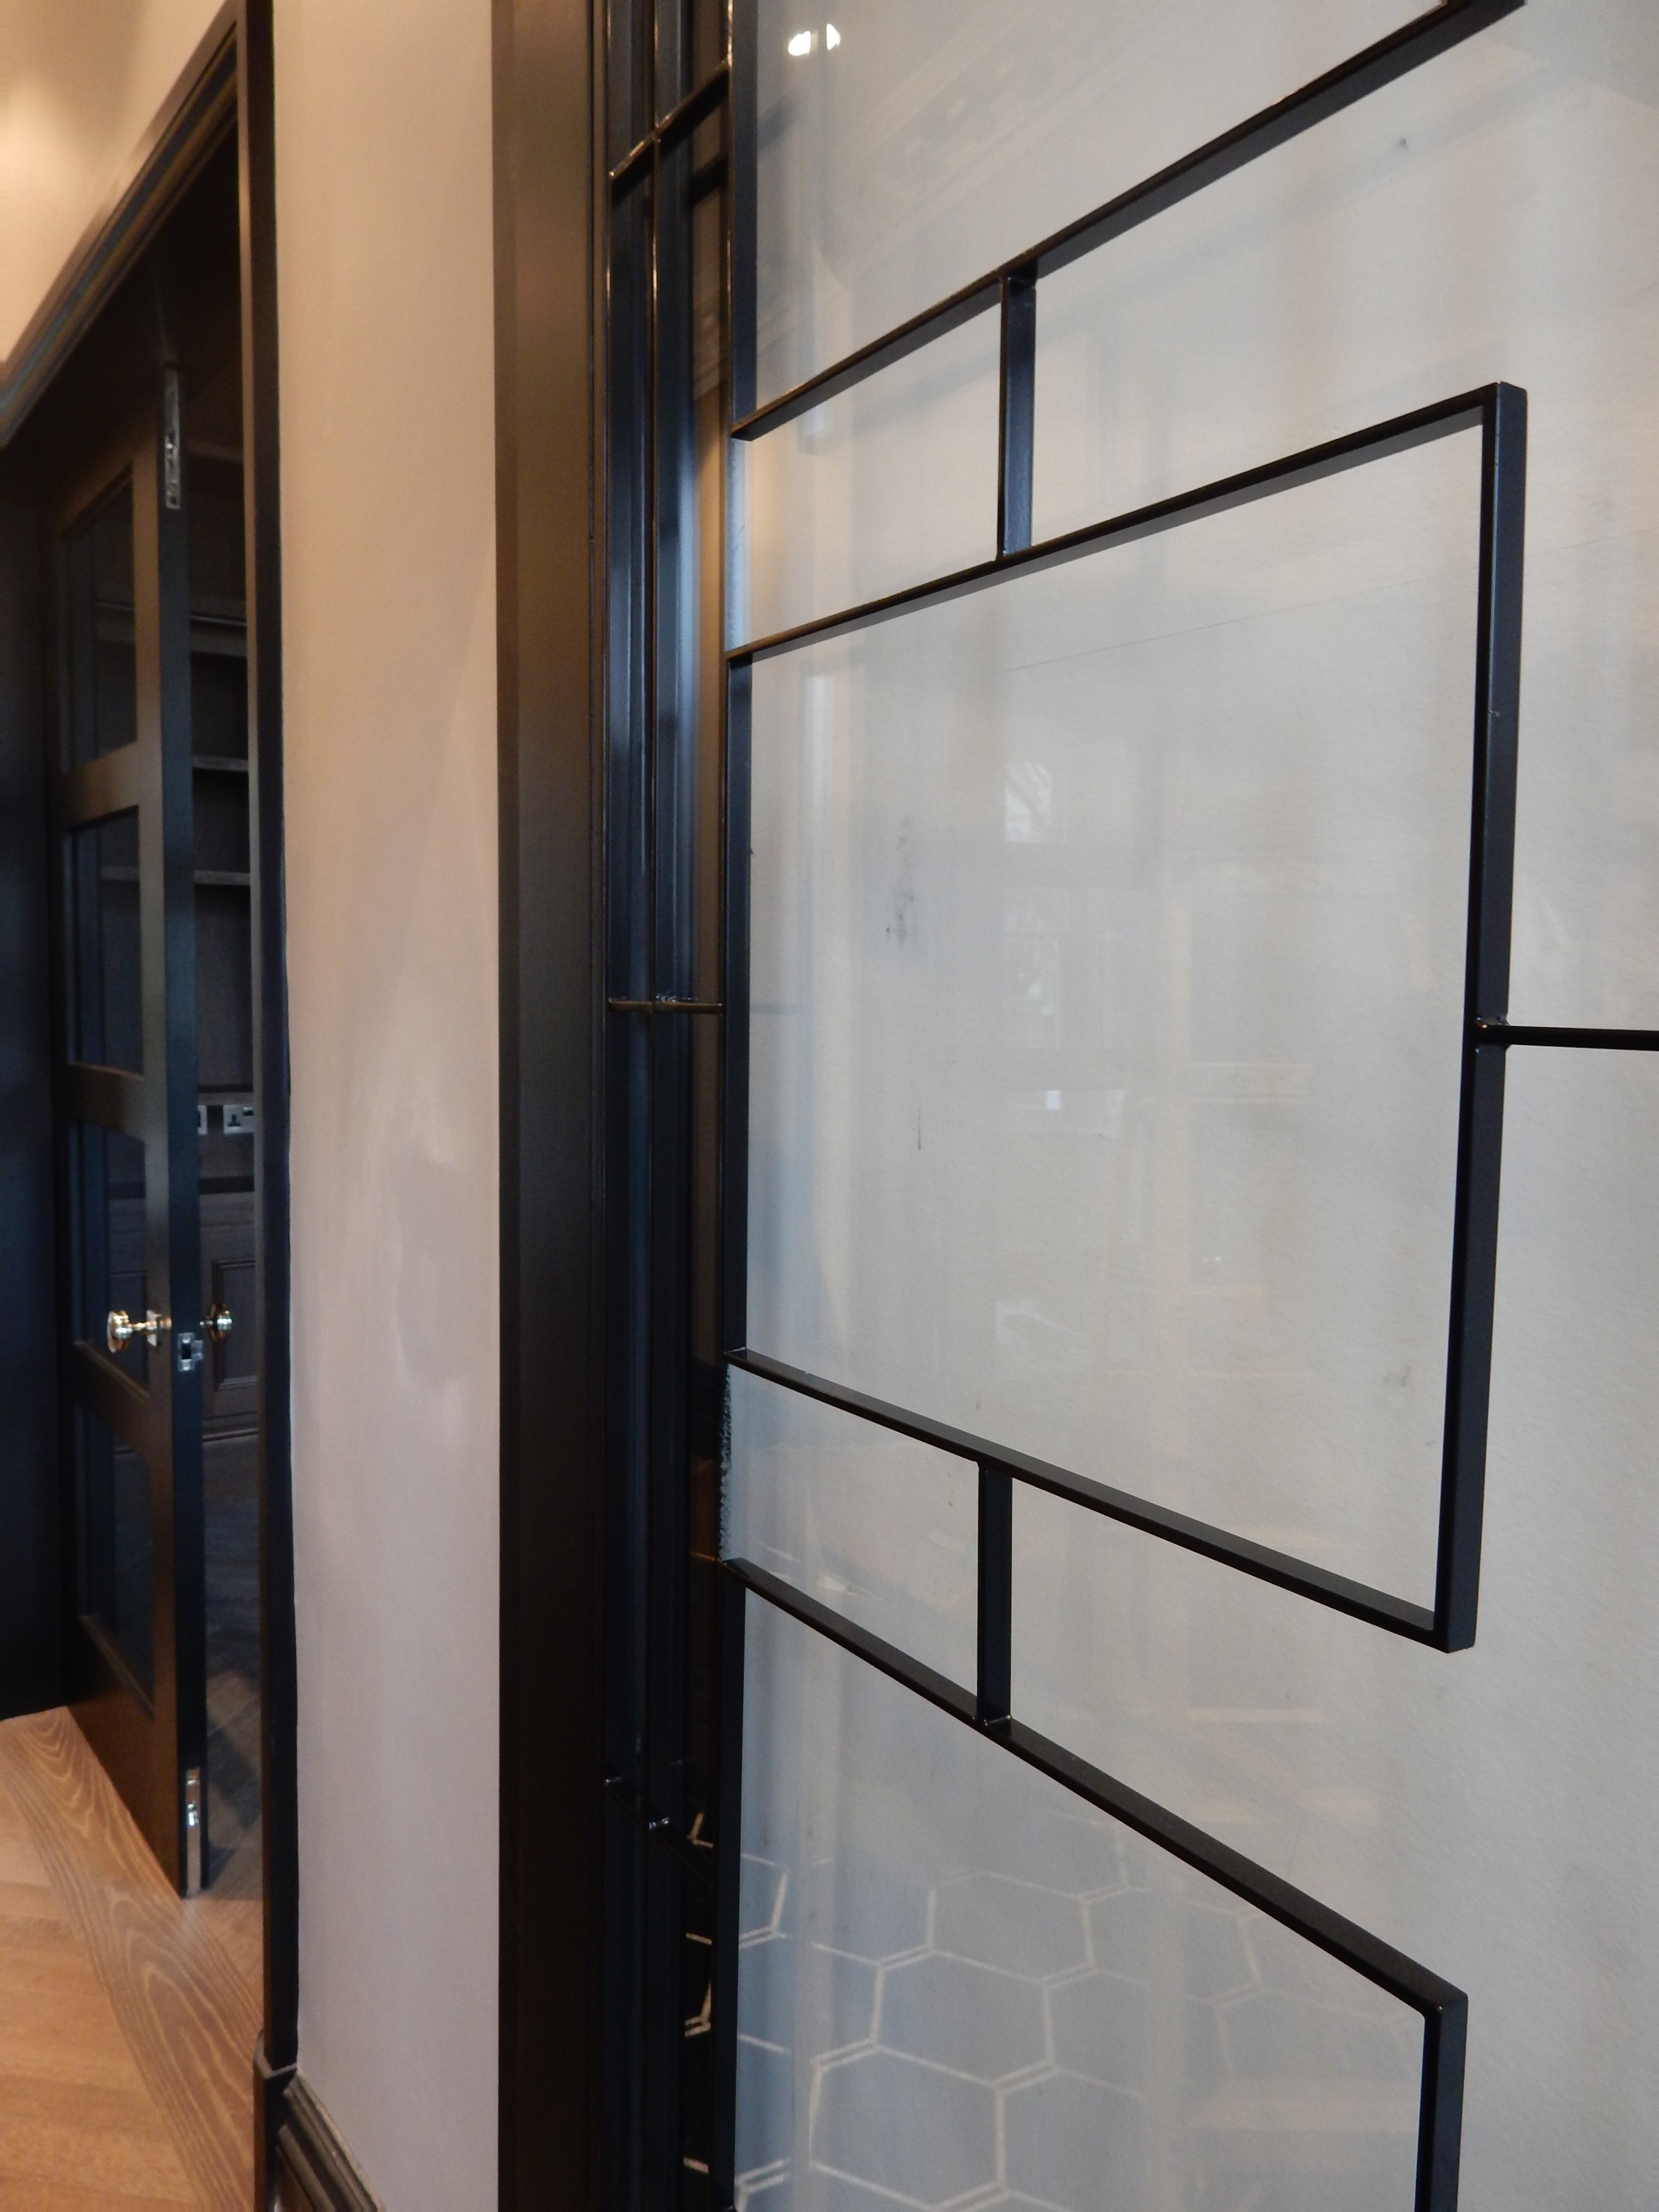 creativemass - bespoke doors, glazing, black metal, London